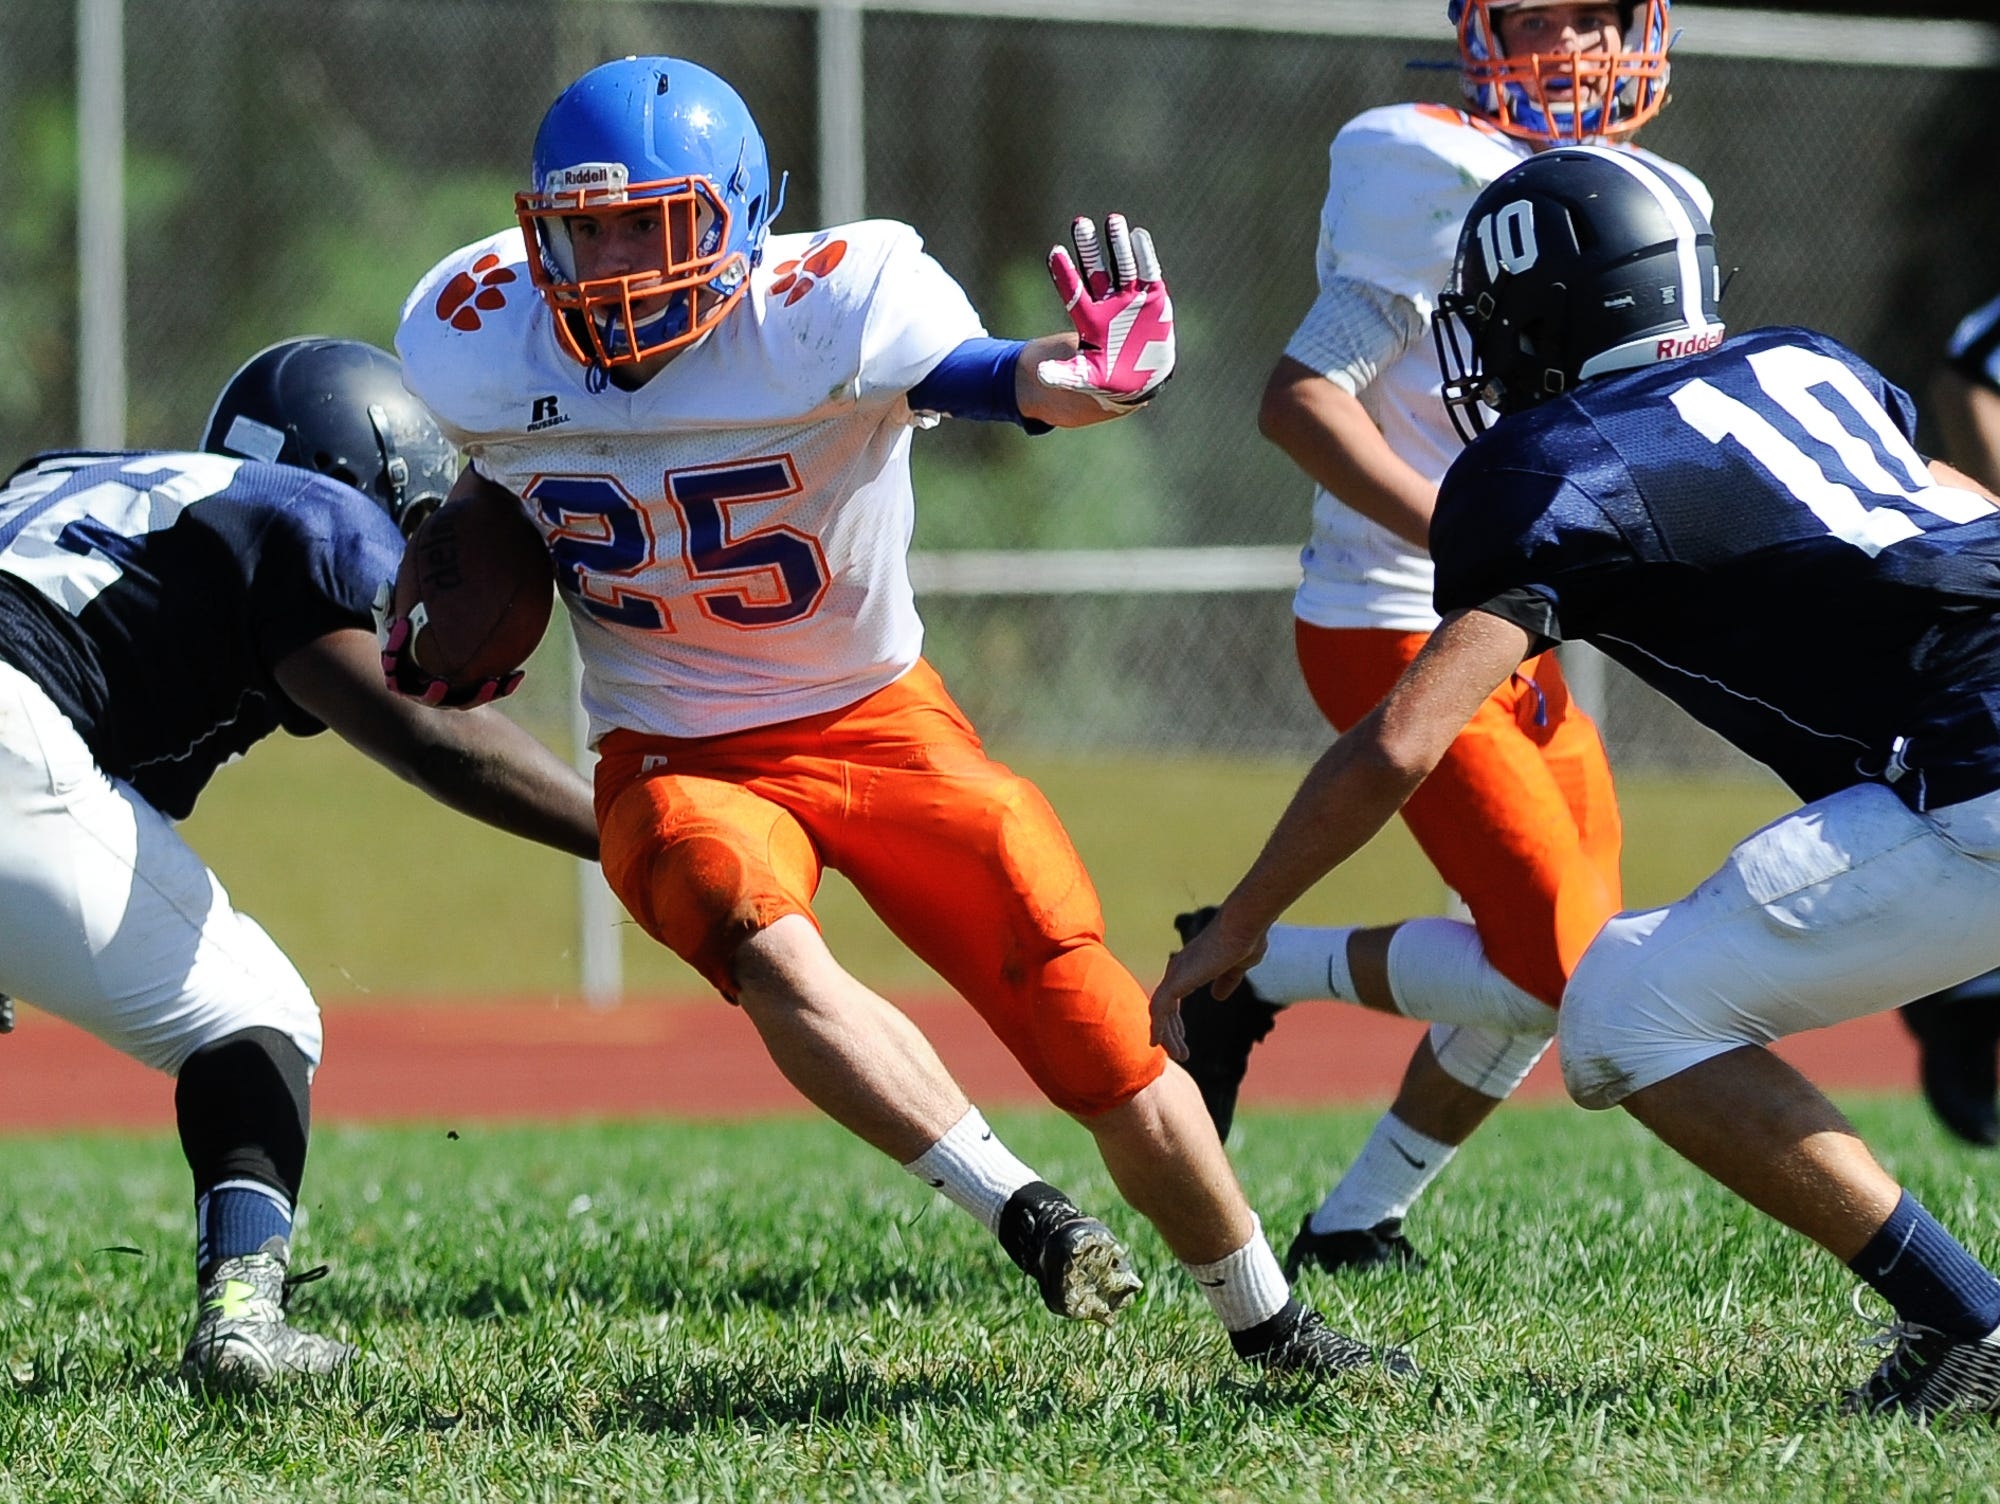 Delmar's #25 Isaac Austin runs the ball for a touchdown in their game against Lake Forest on Saturday at Lake Forest High School.